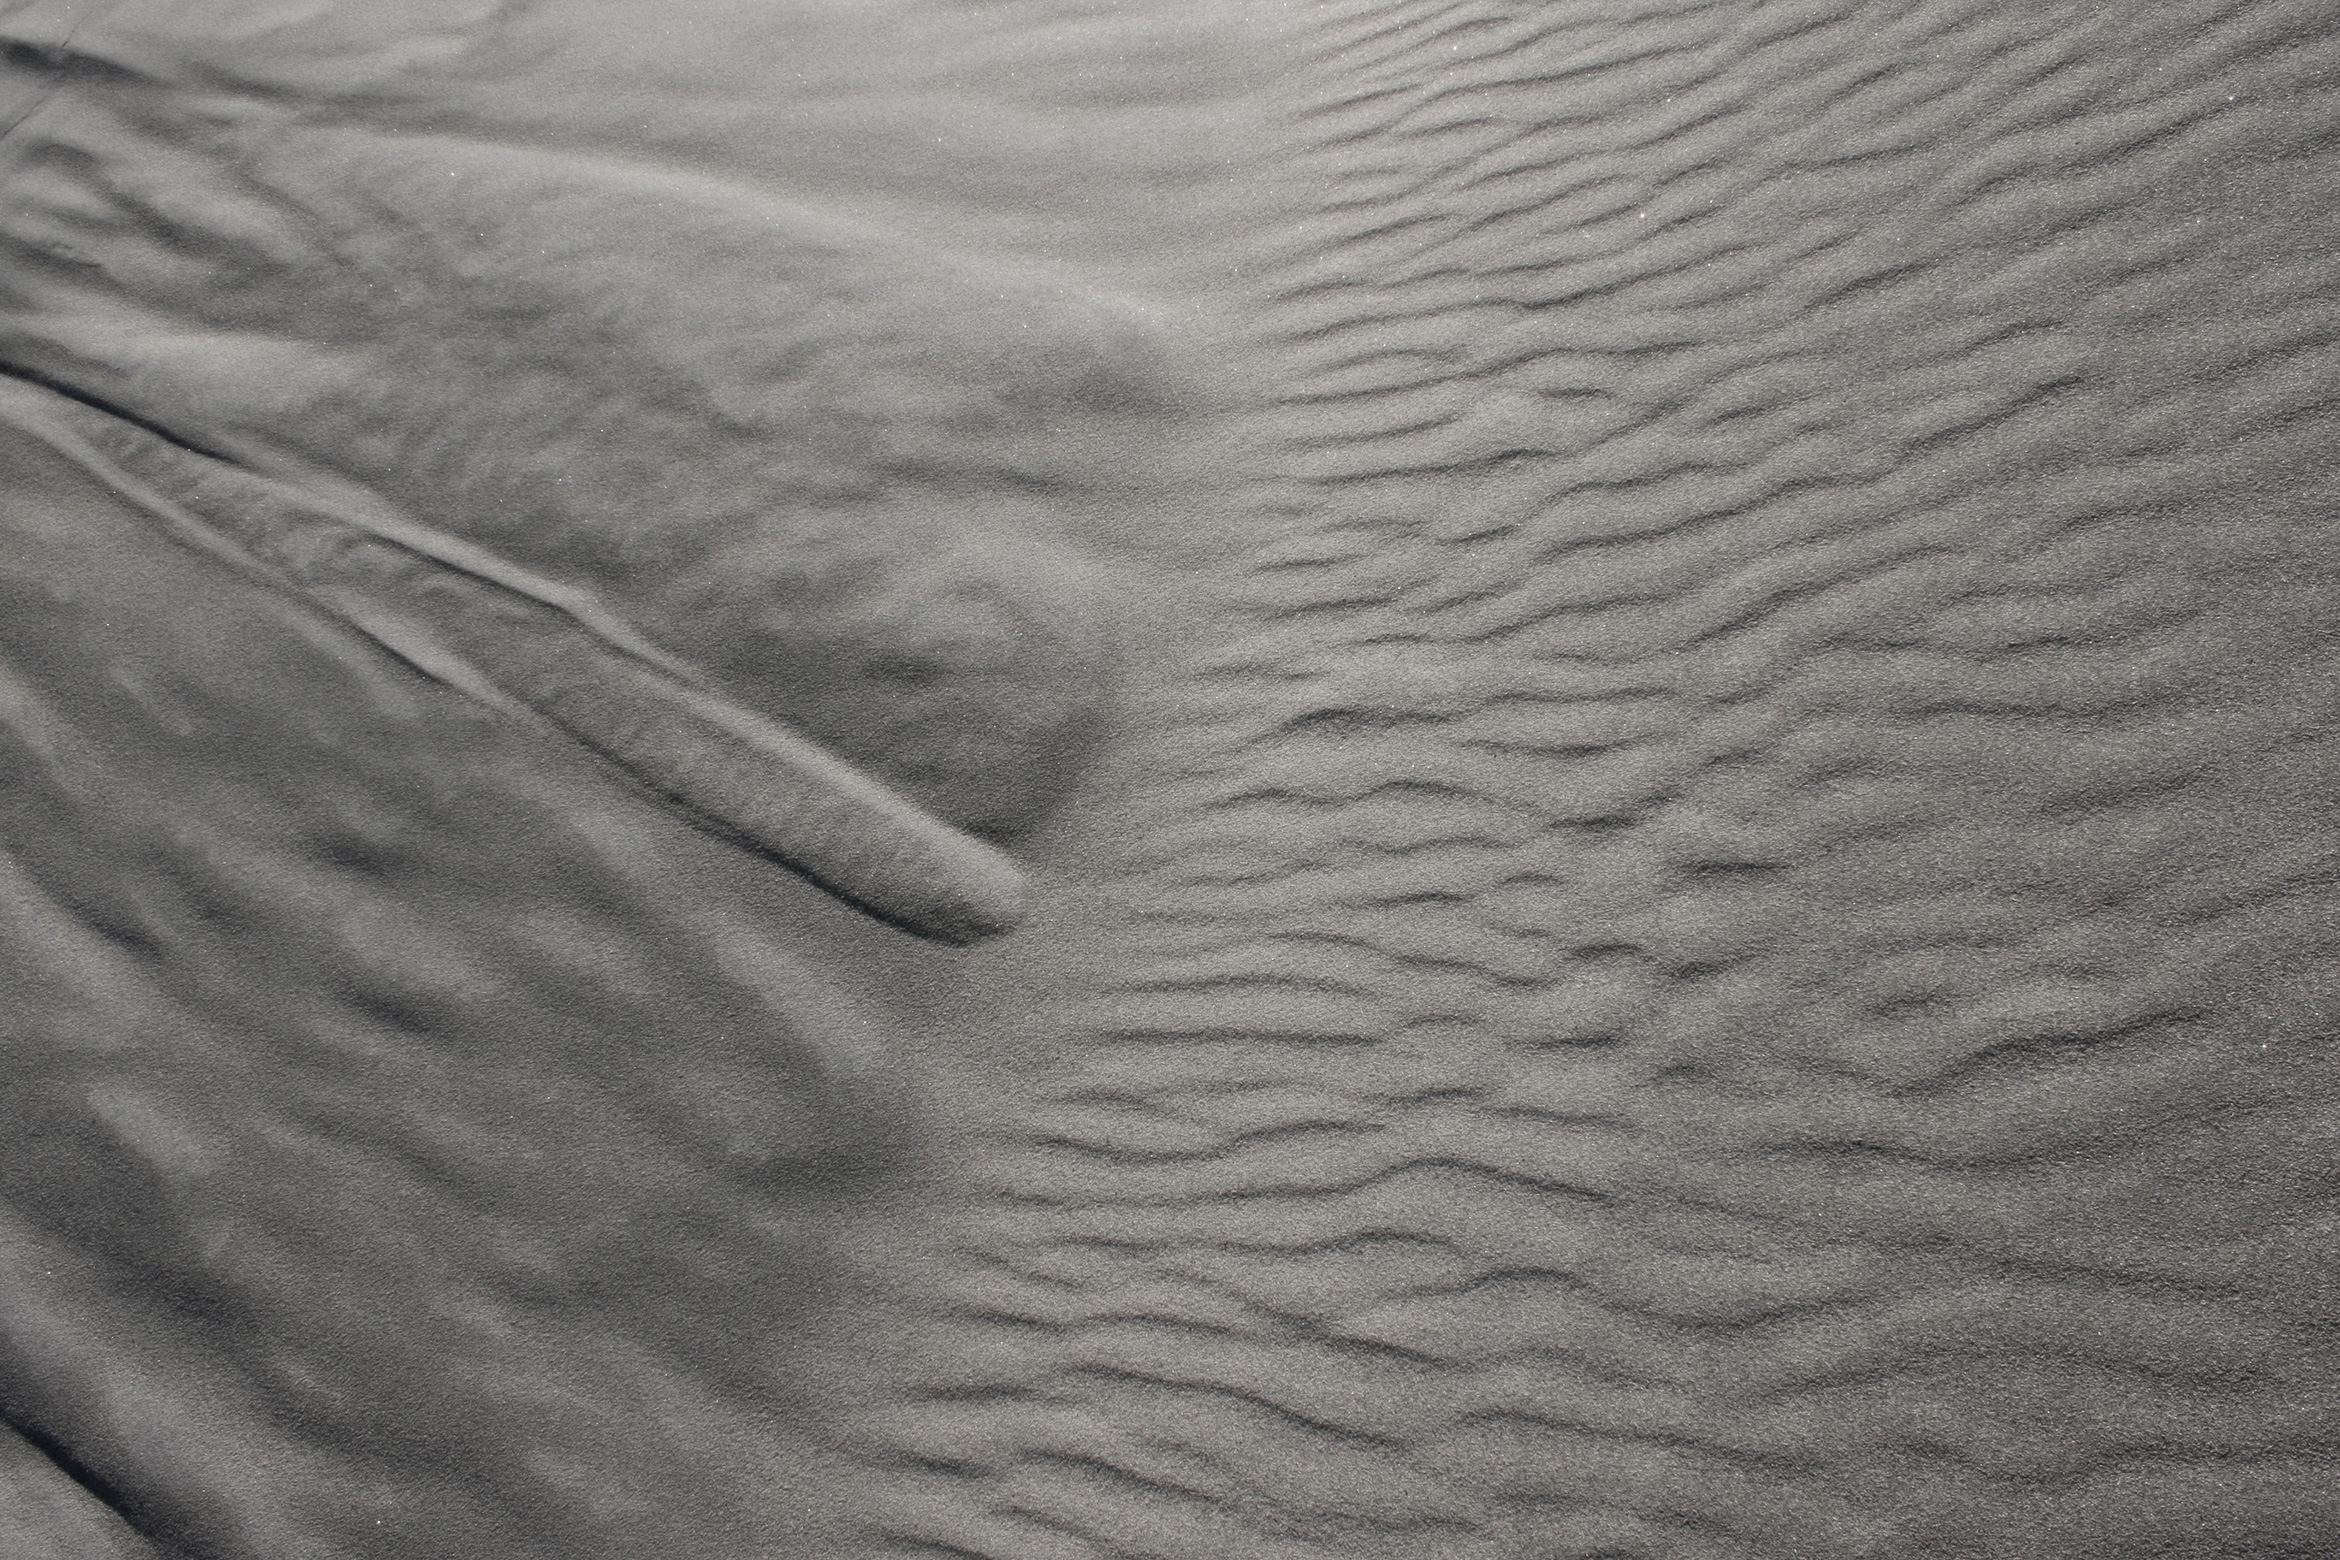 sand-patterns-wind-black-sand-nz1